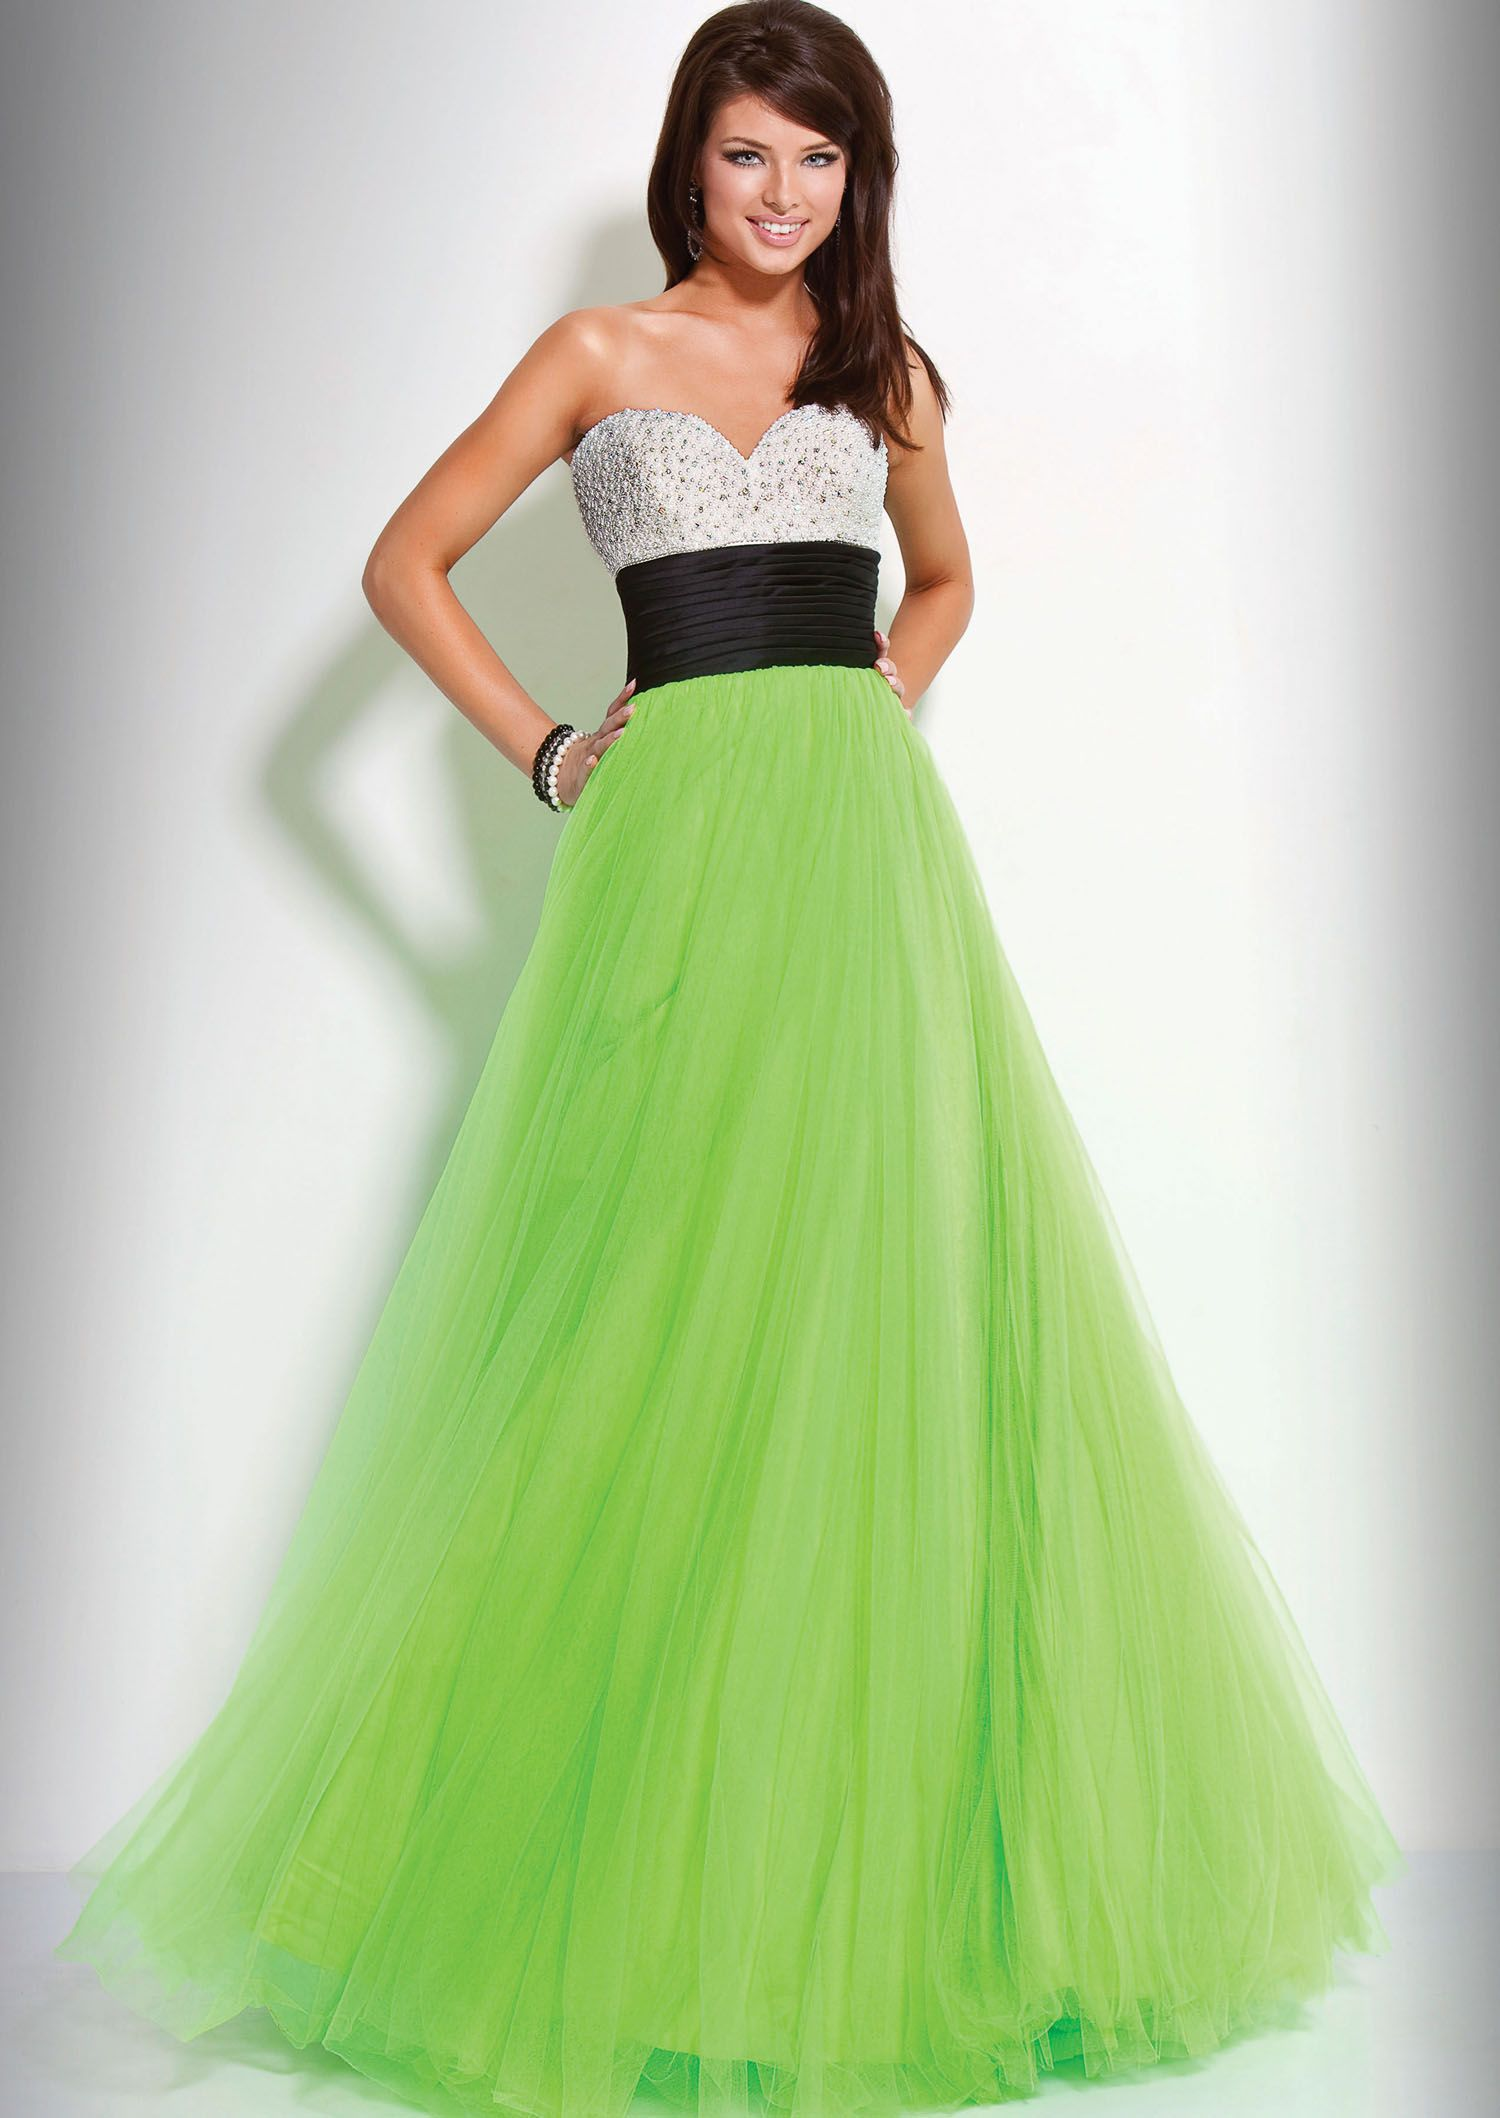 17 Best images about prom dresses on Pinterest  Sexy Long prom ...